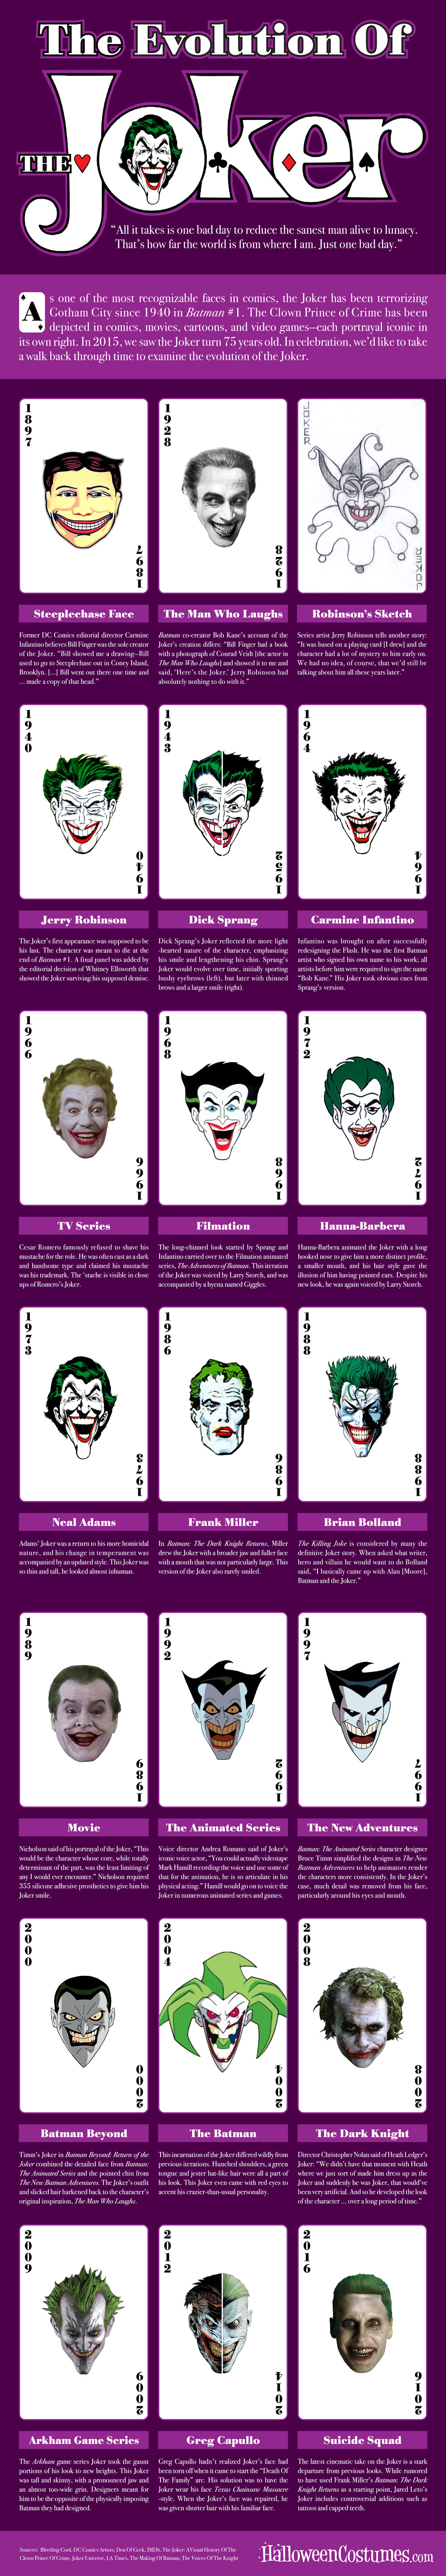 Joker-Evolution-Infographic